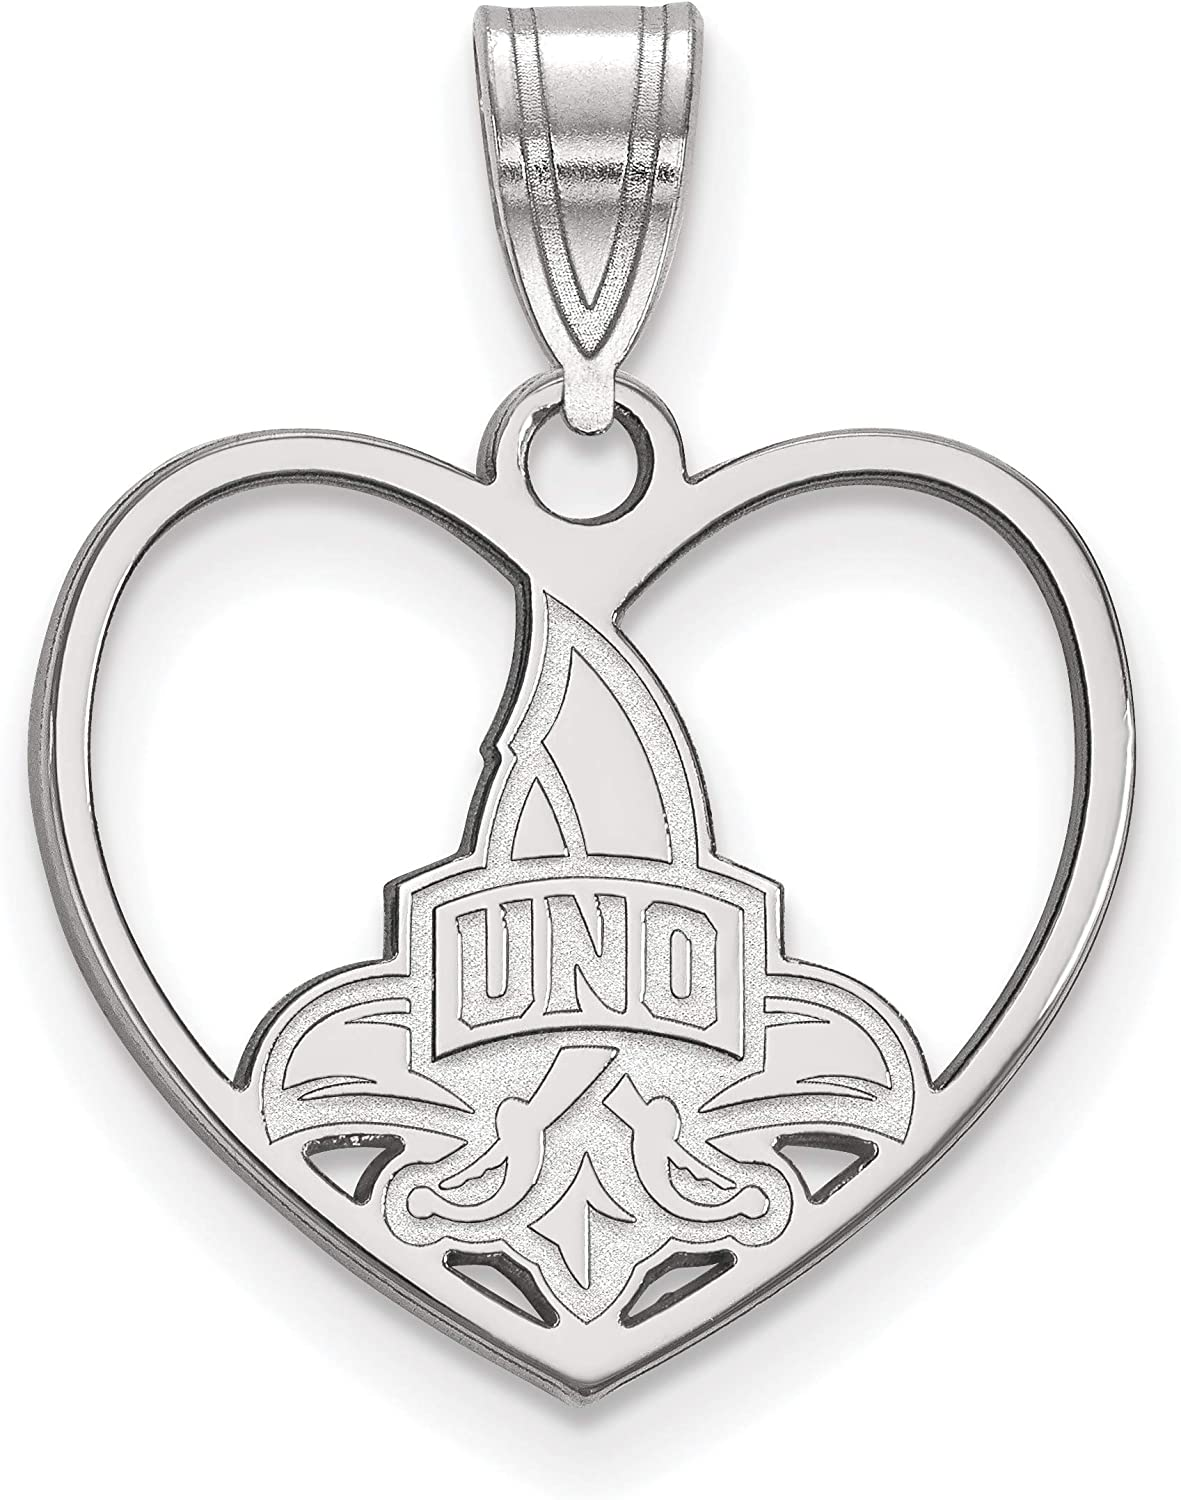 University of New Orleans Privateers School Logo on Heart Shaped Pendant in Sterling Silver 15x17mm